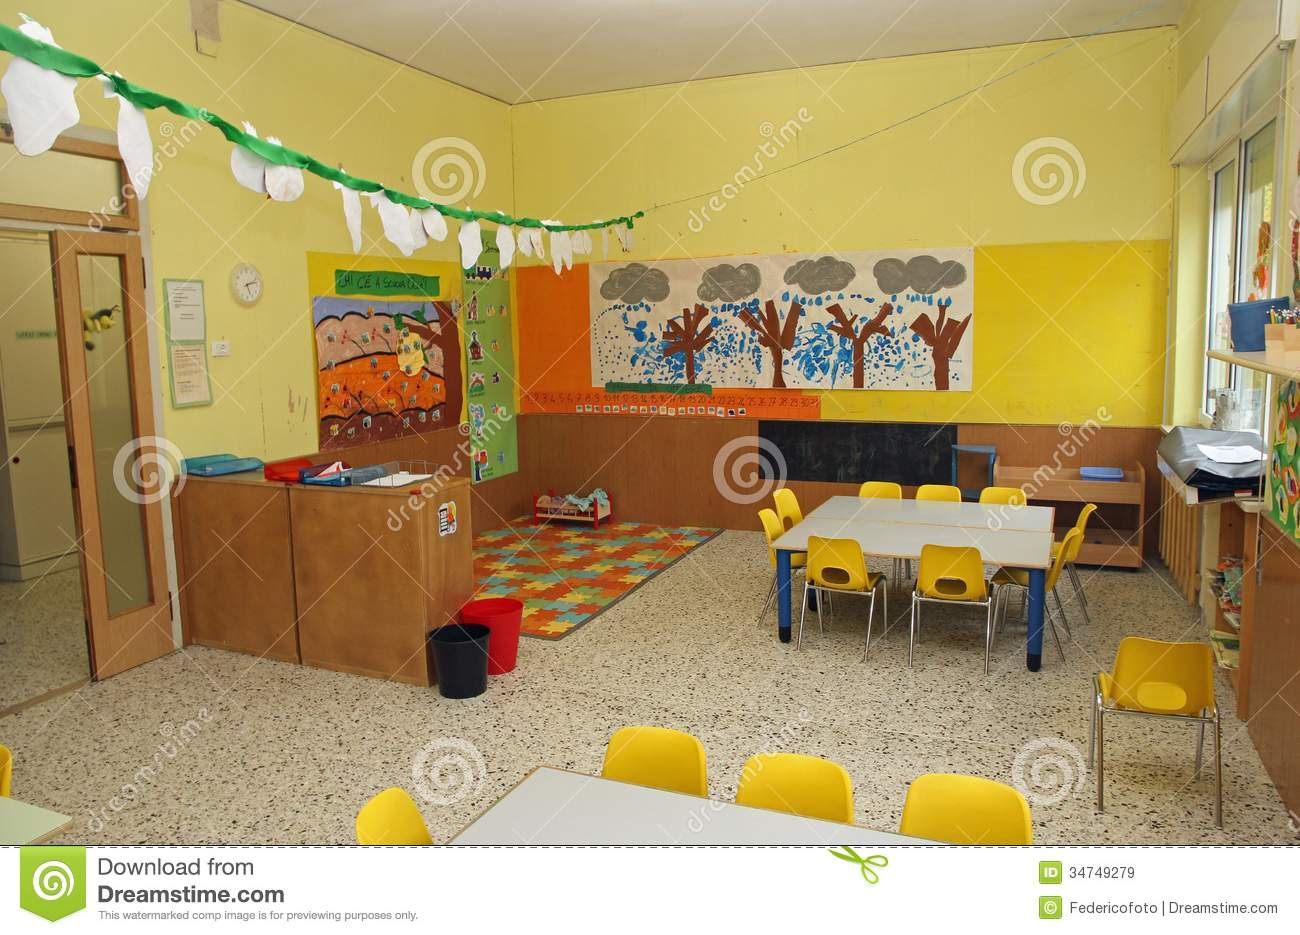 Classroom In A Kindergarten With Tables And Yellow Chairs